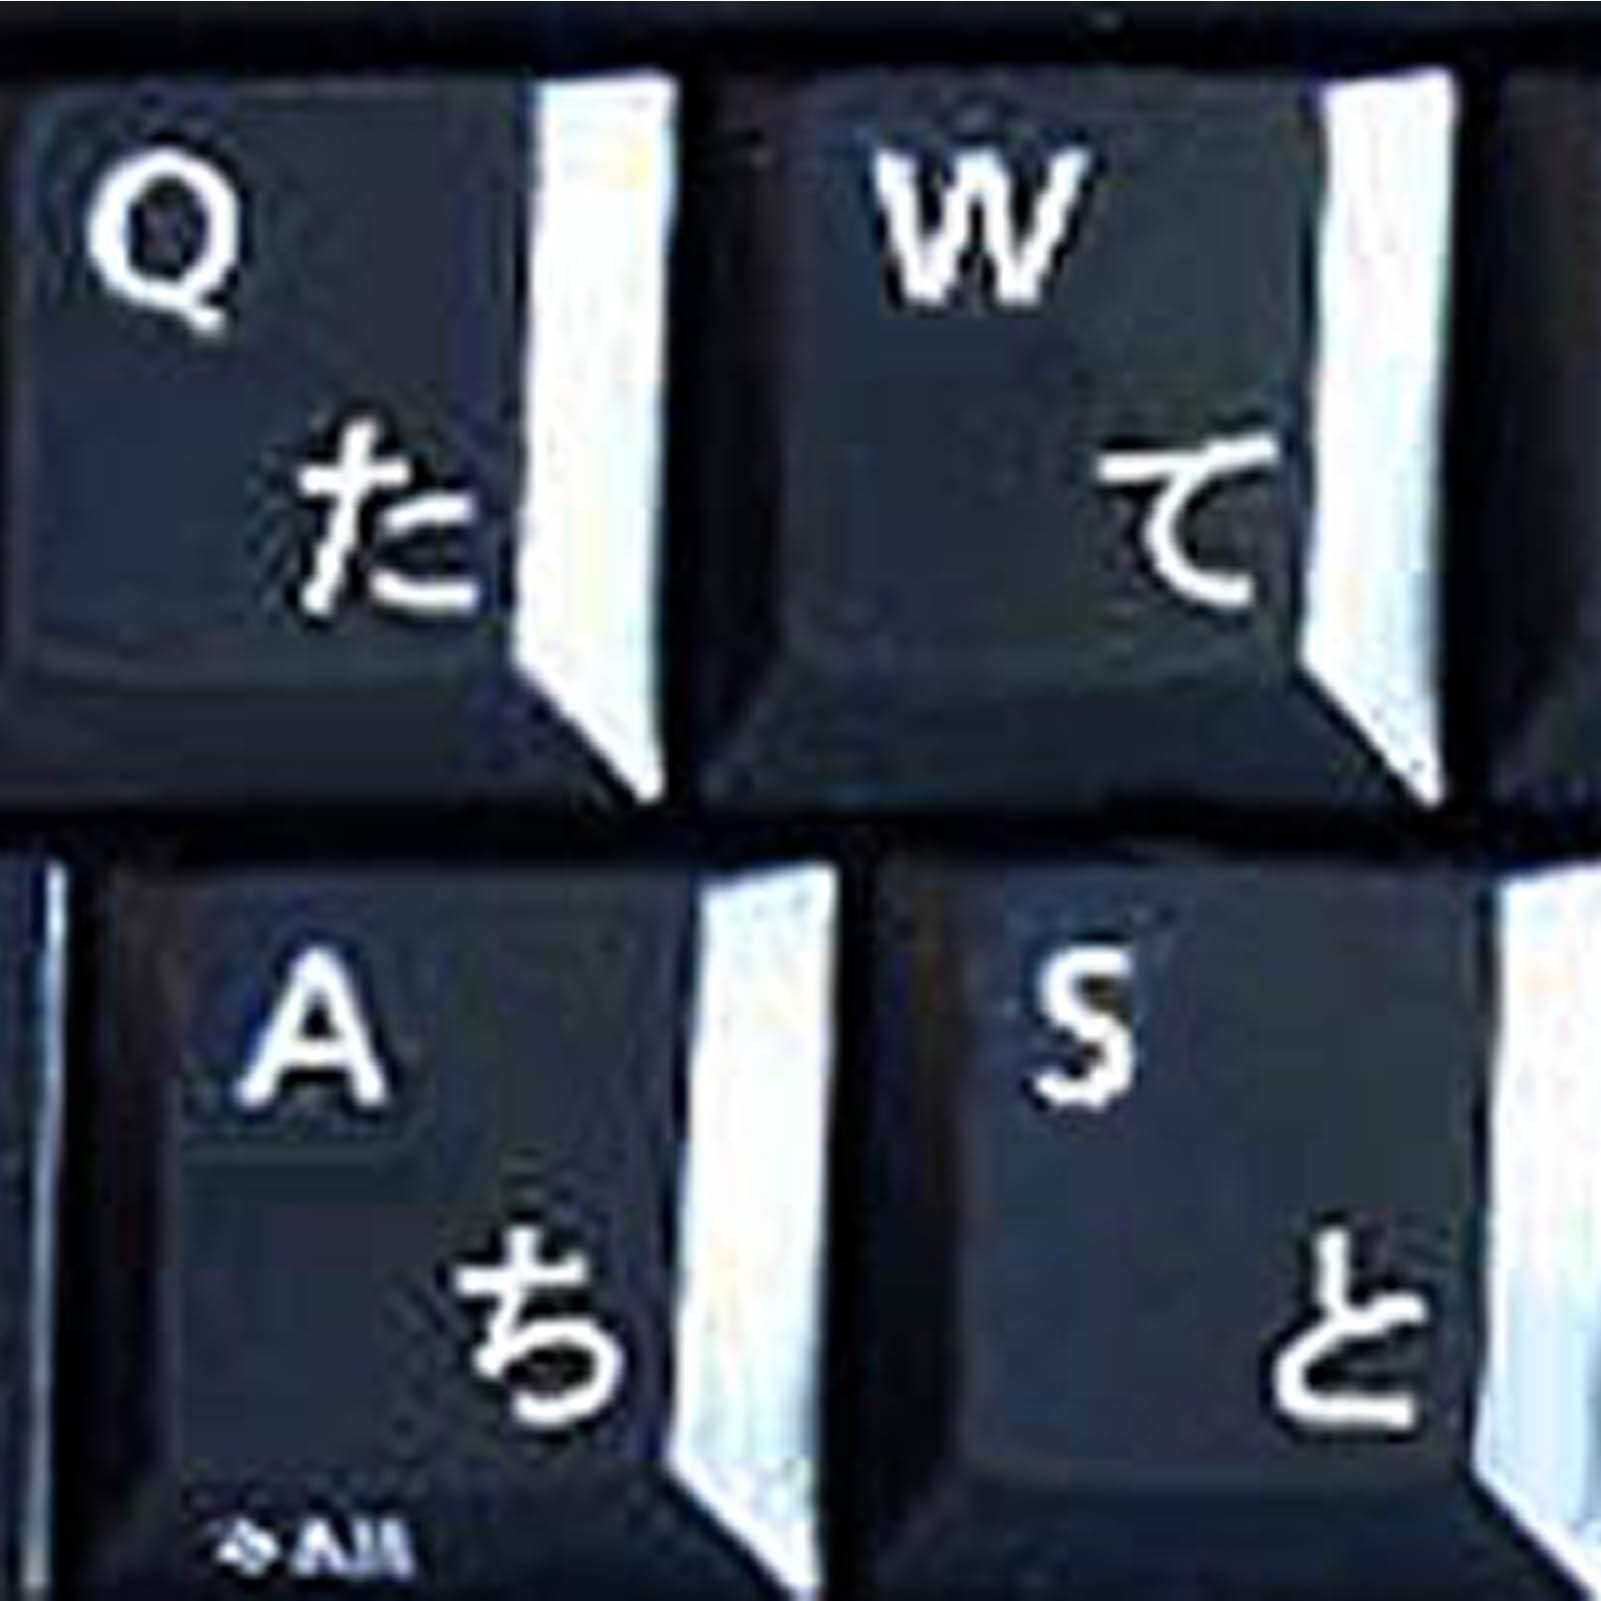 JAPANESE HIRAGANA KEYBOARD STICKERS WITH YELLOW LETTERING TRANSPARENT BACKGROUND